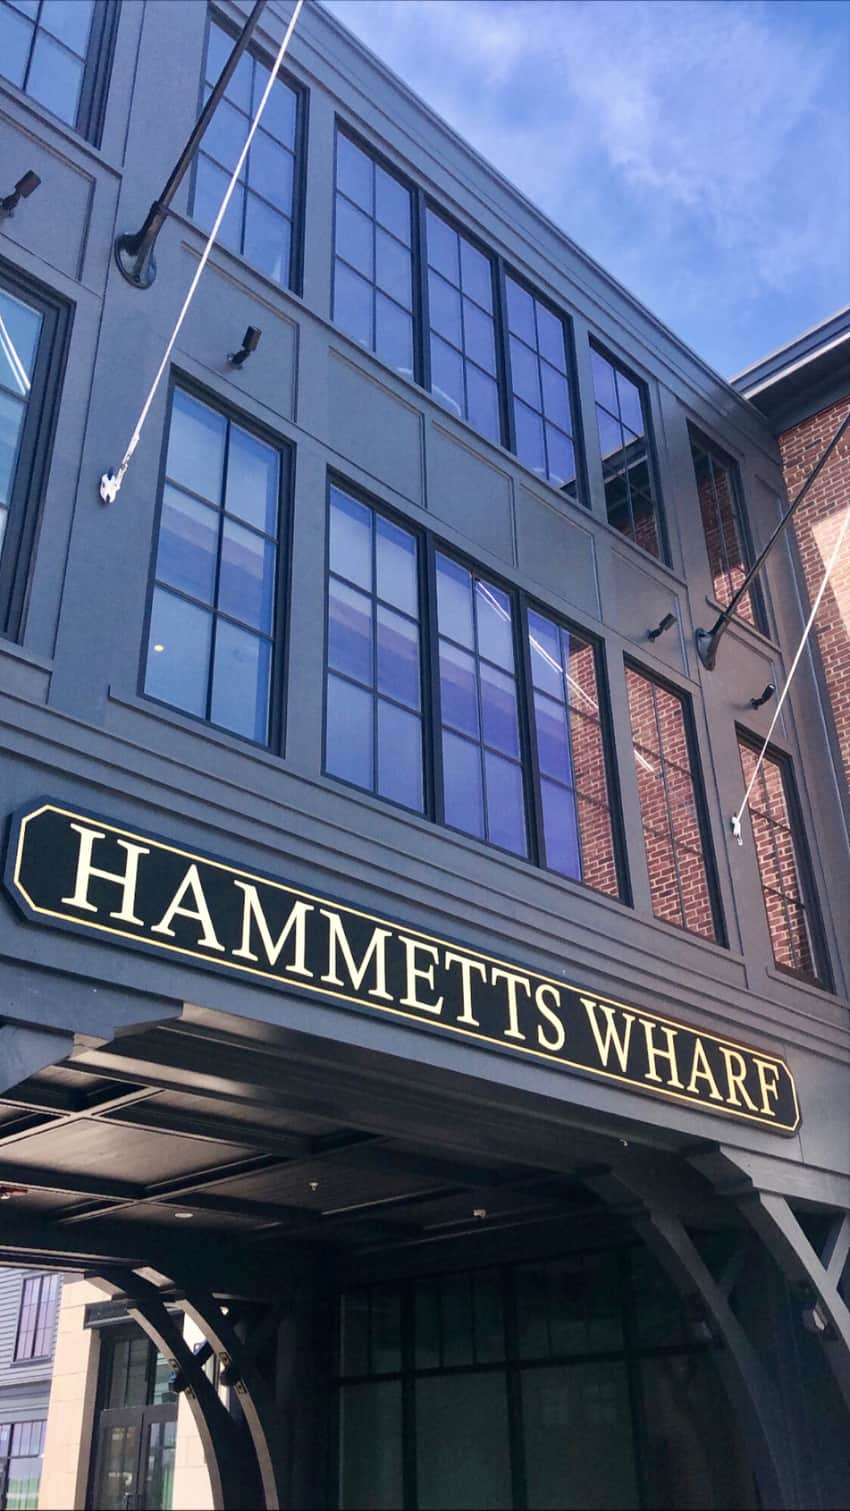 Hammett's Wharf is where the hotel is located, downtown Newport.